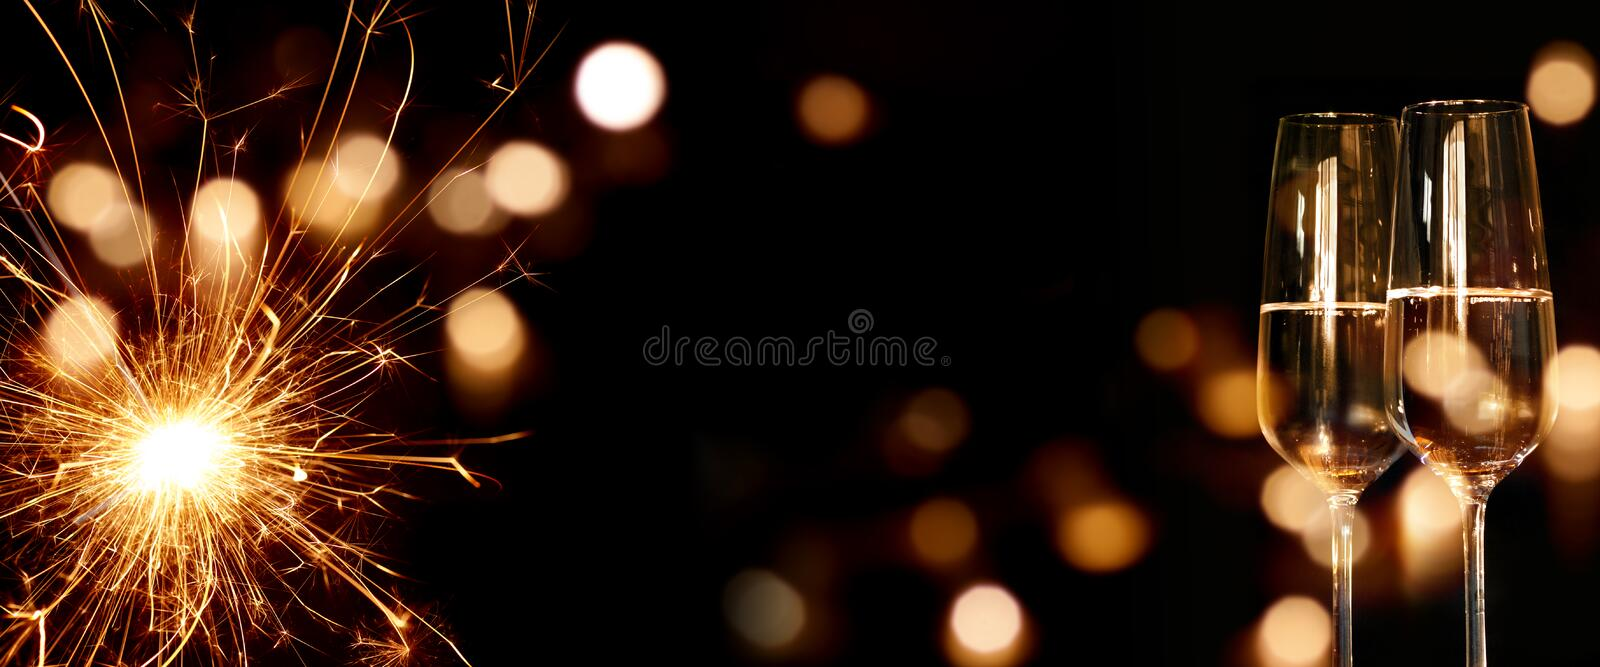 Sparkling New Year background royalty free stock photos